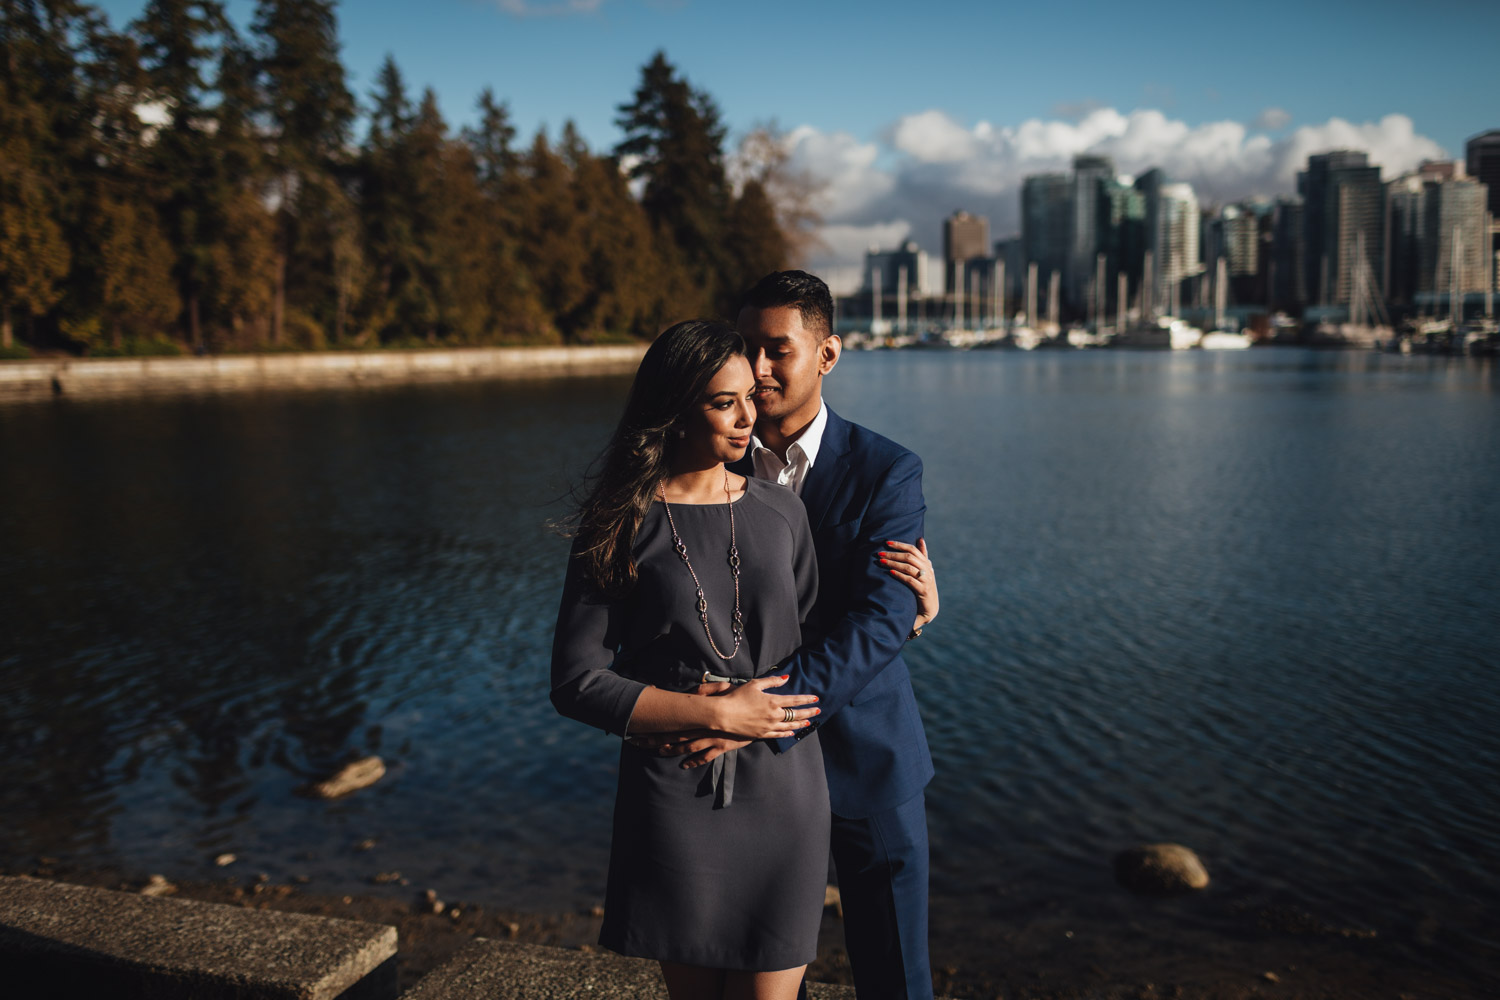 stanley park engagement photography in vancouver bc